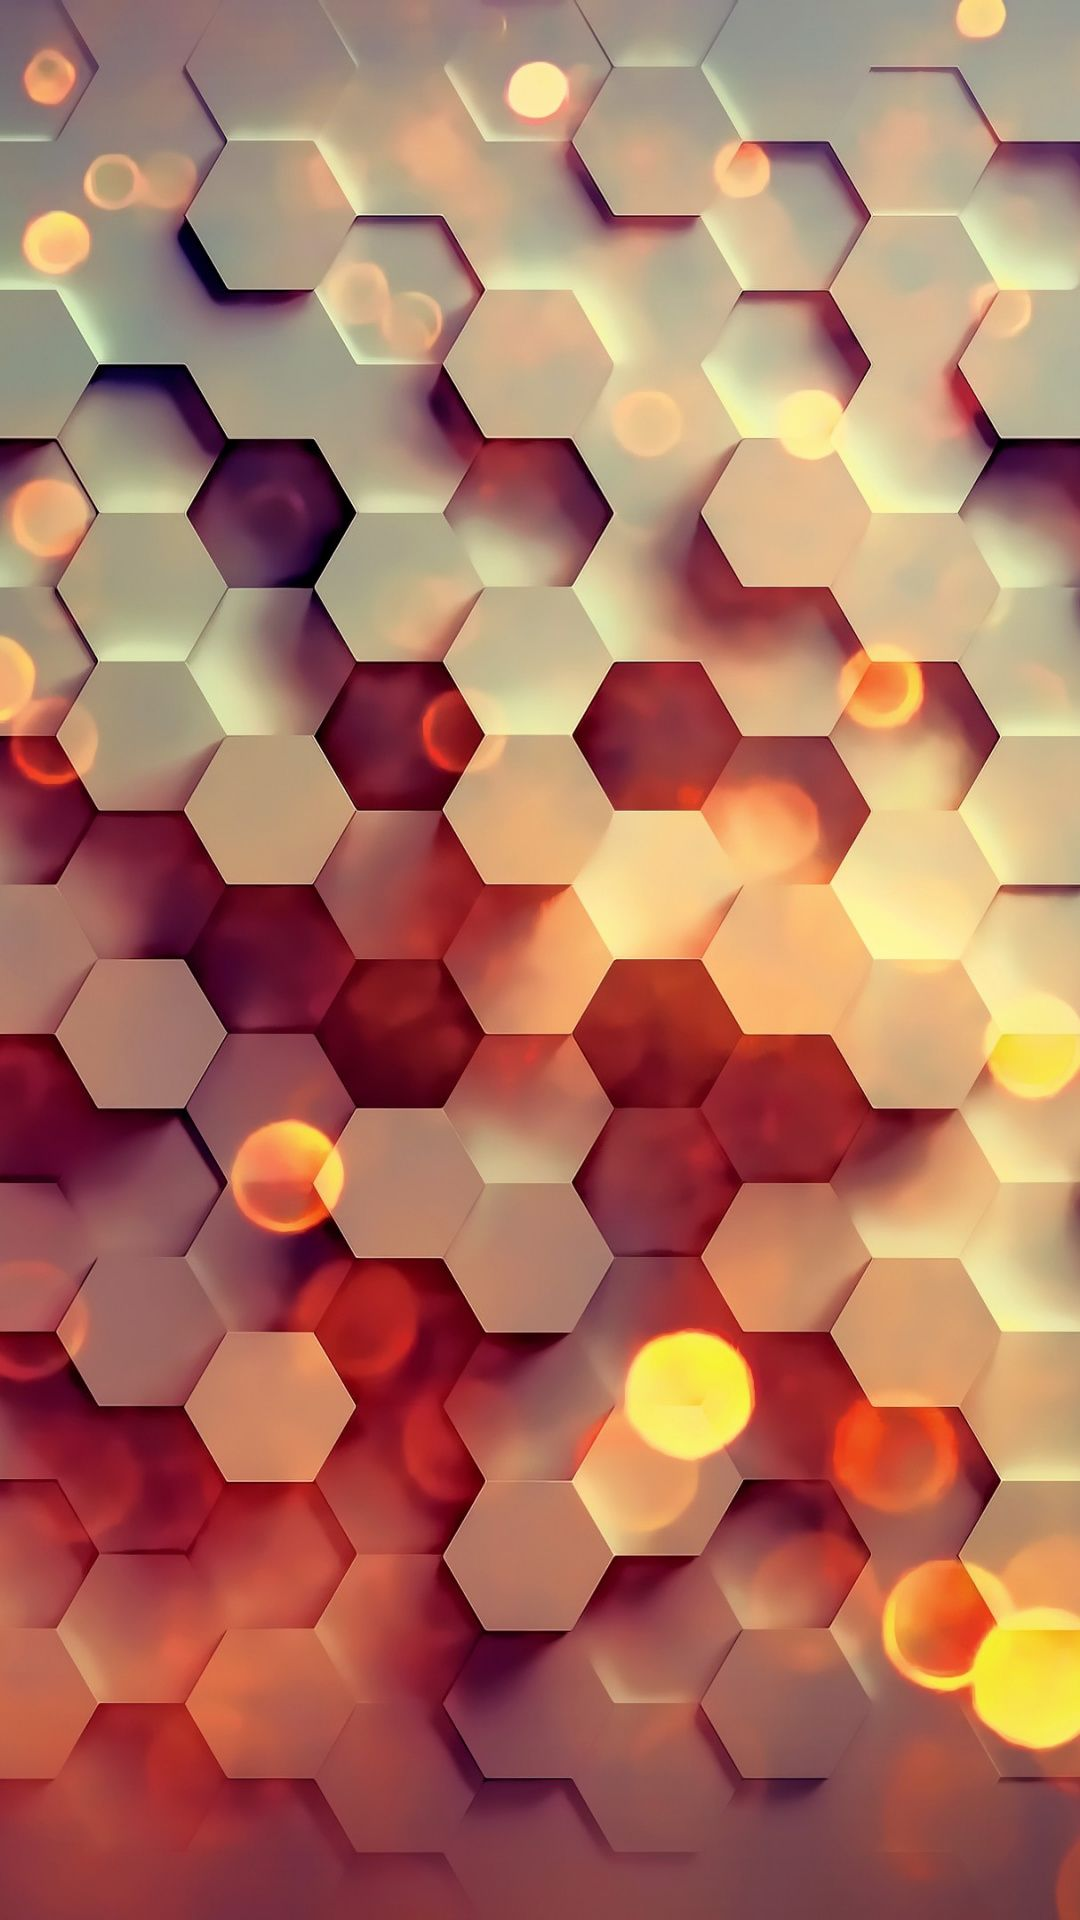 Wallpaper 3d High Resolution 1080 X 1920 Hd For Iphone And Android Hexagon Wallpaper Abstract Iphone Wallpaper Android Wallpaper